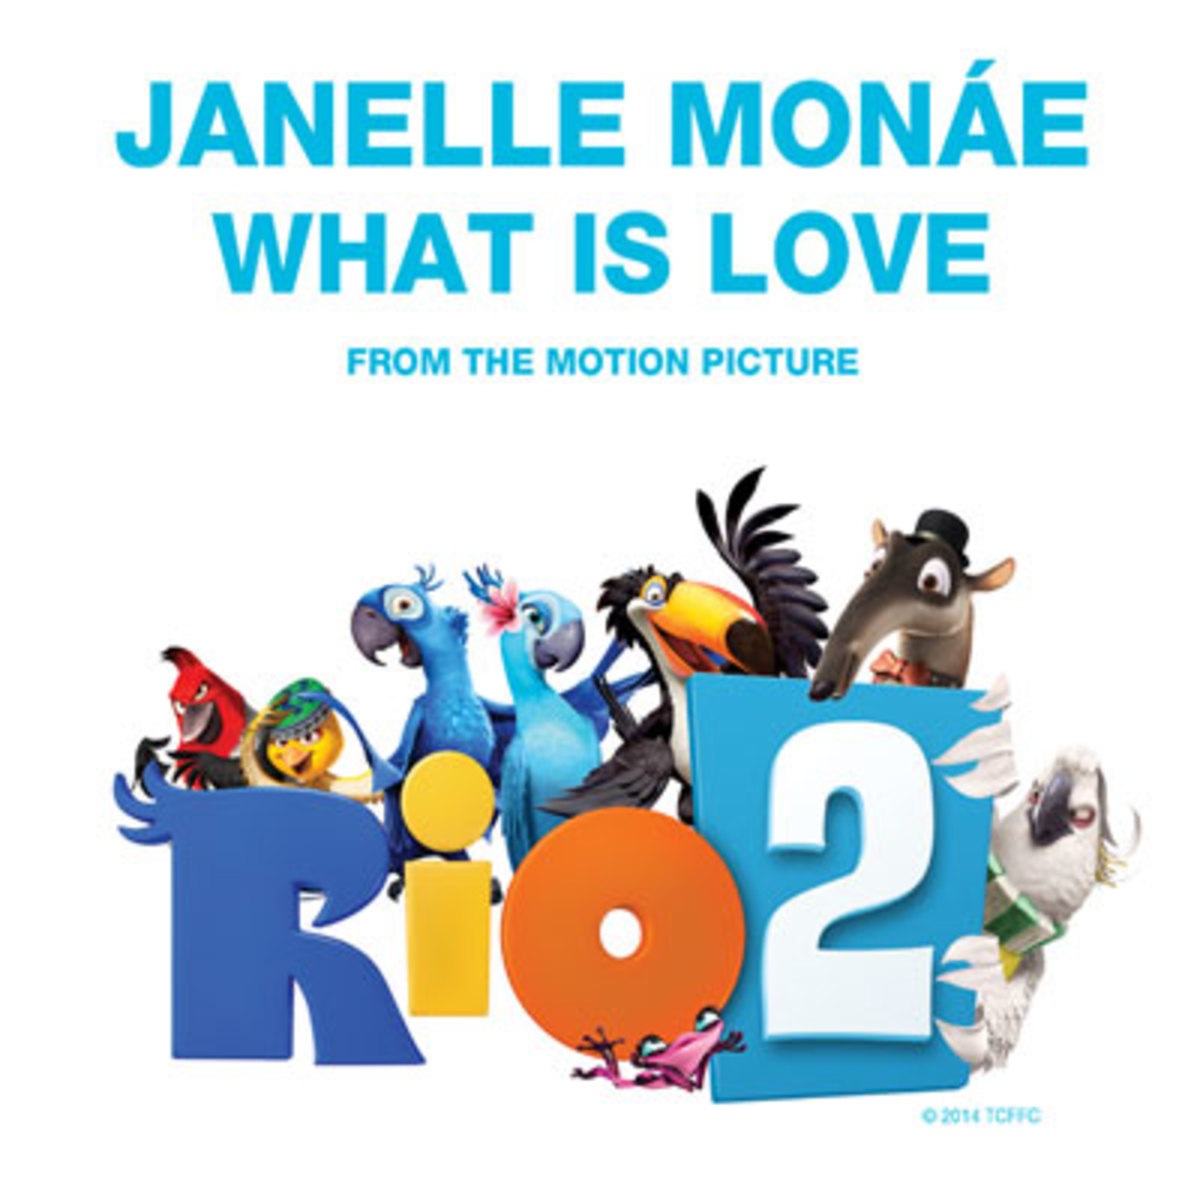 janellemonae-whatlove.jpg